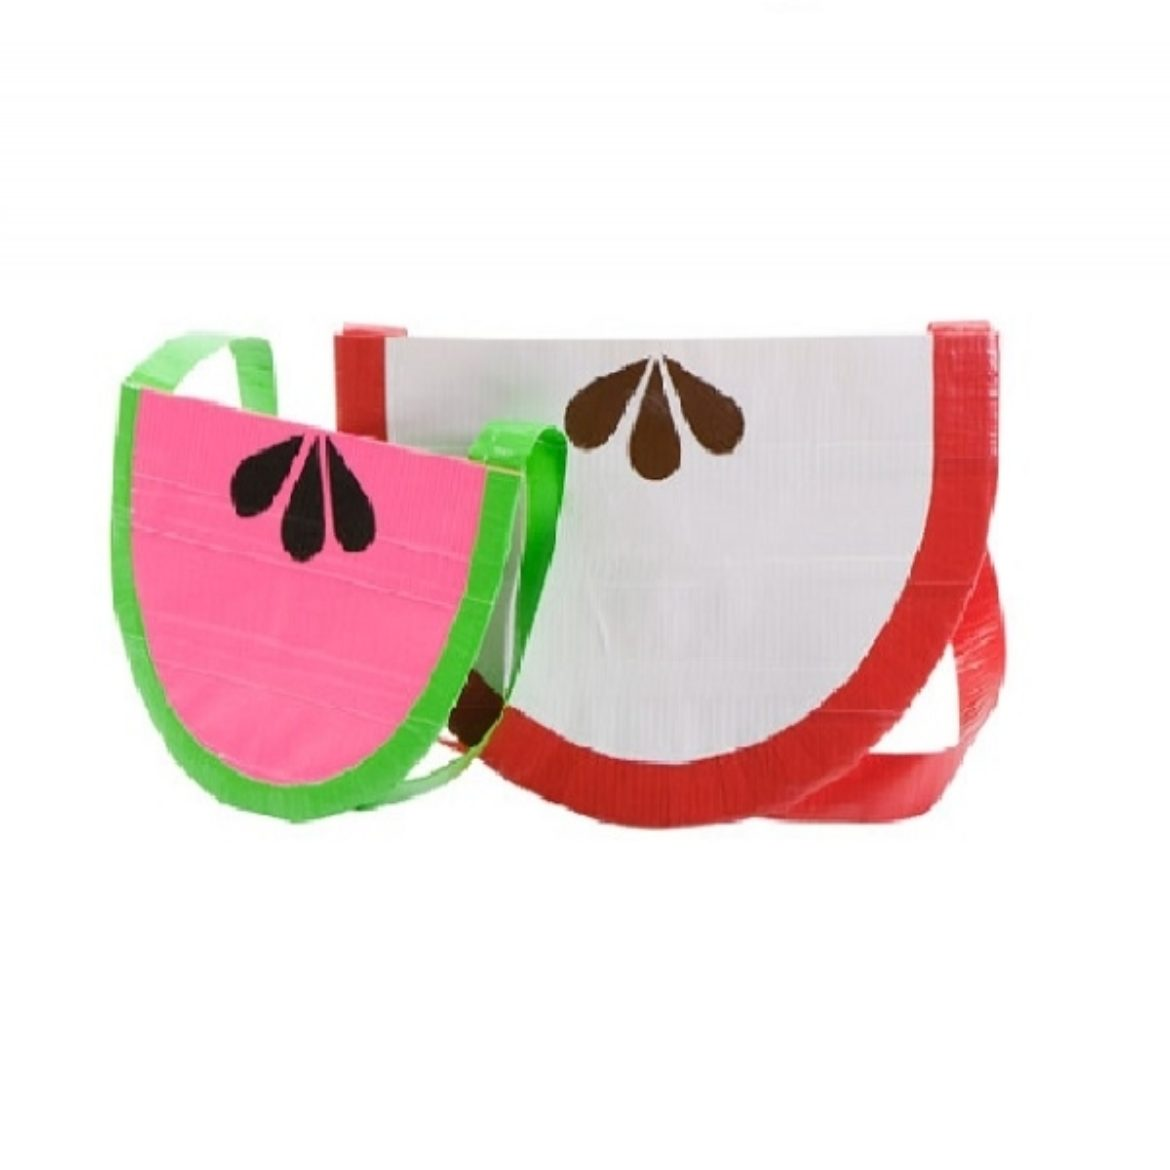 Two example fruit style purses